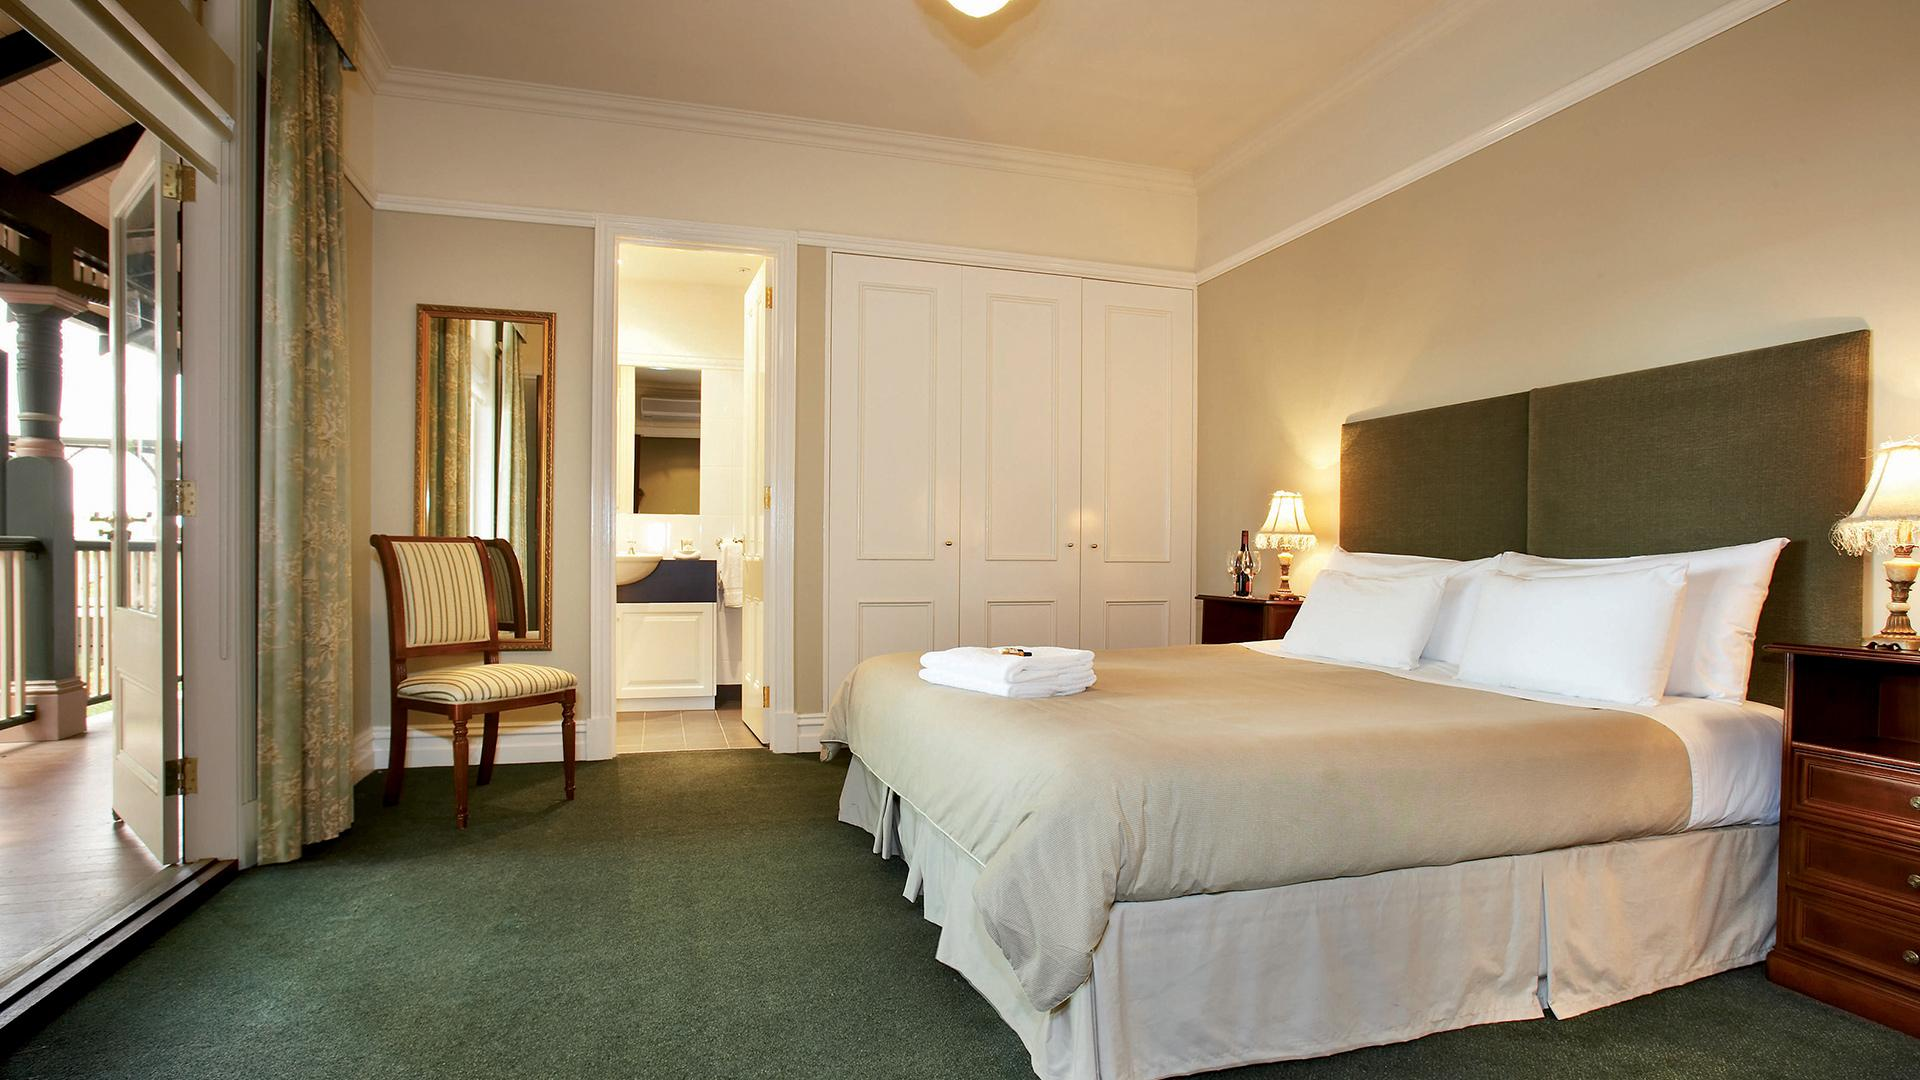 Standard Room image 1 at Bellinzona Resort by Hepburn Shire, Victoria, Australia